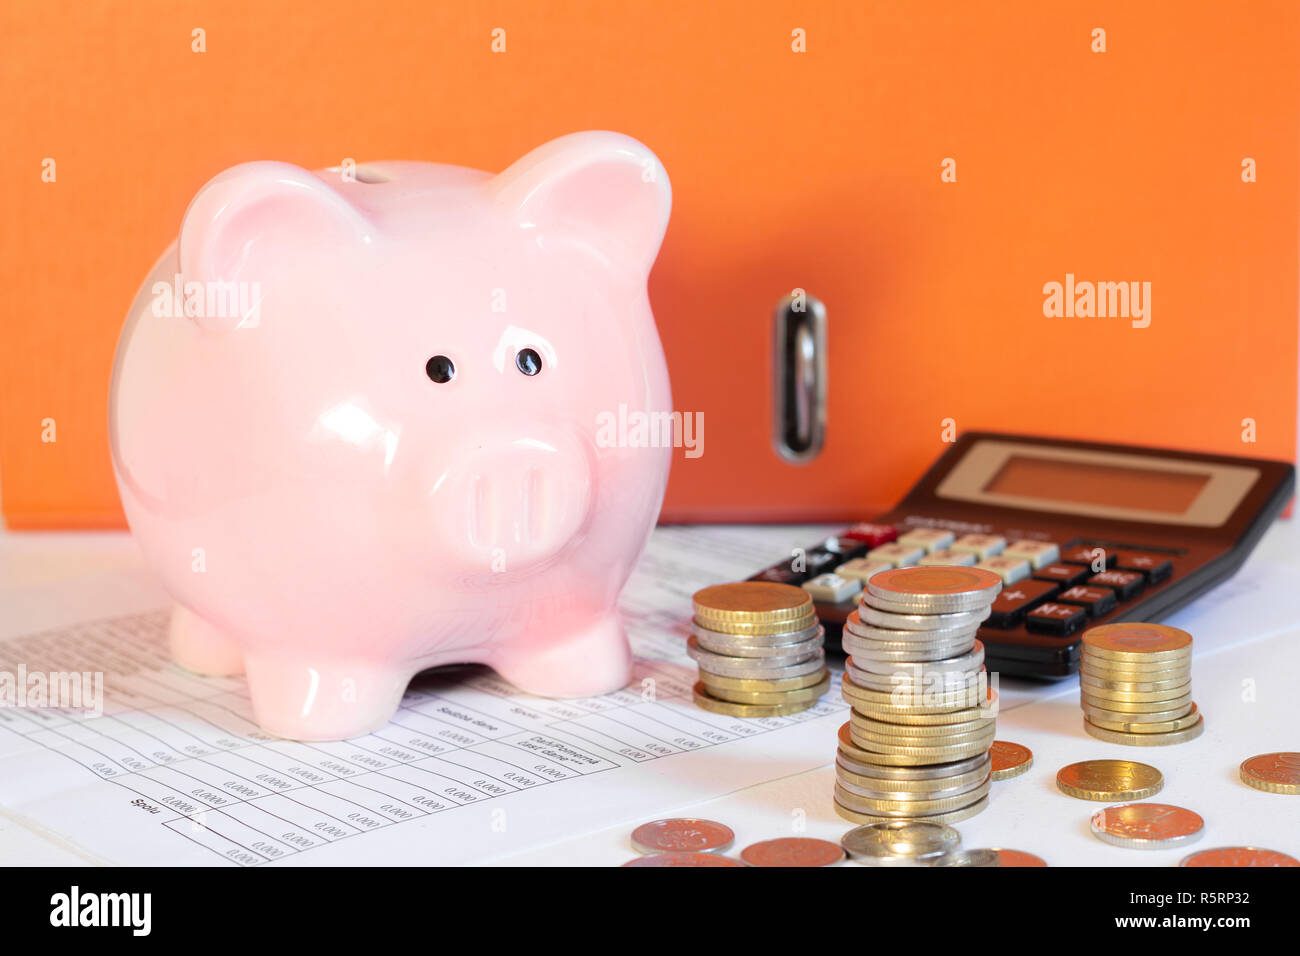 personal finances and savings concept - Stock Image